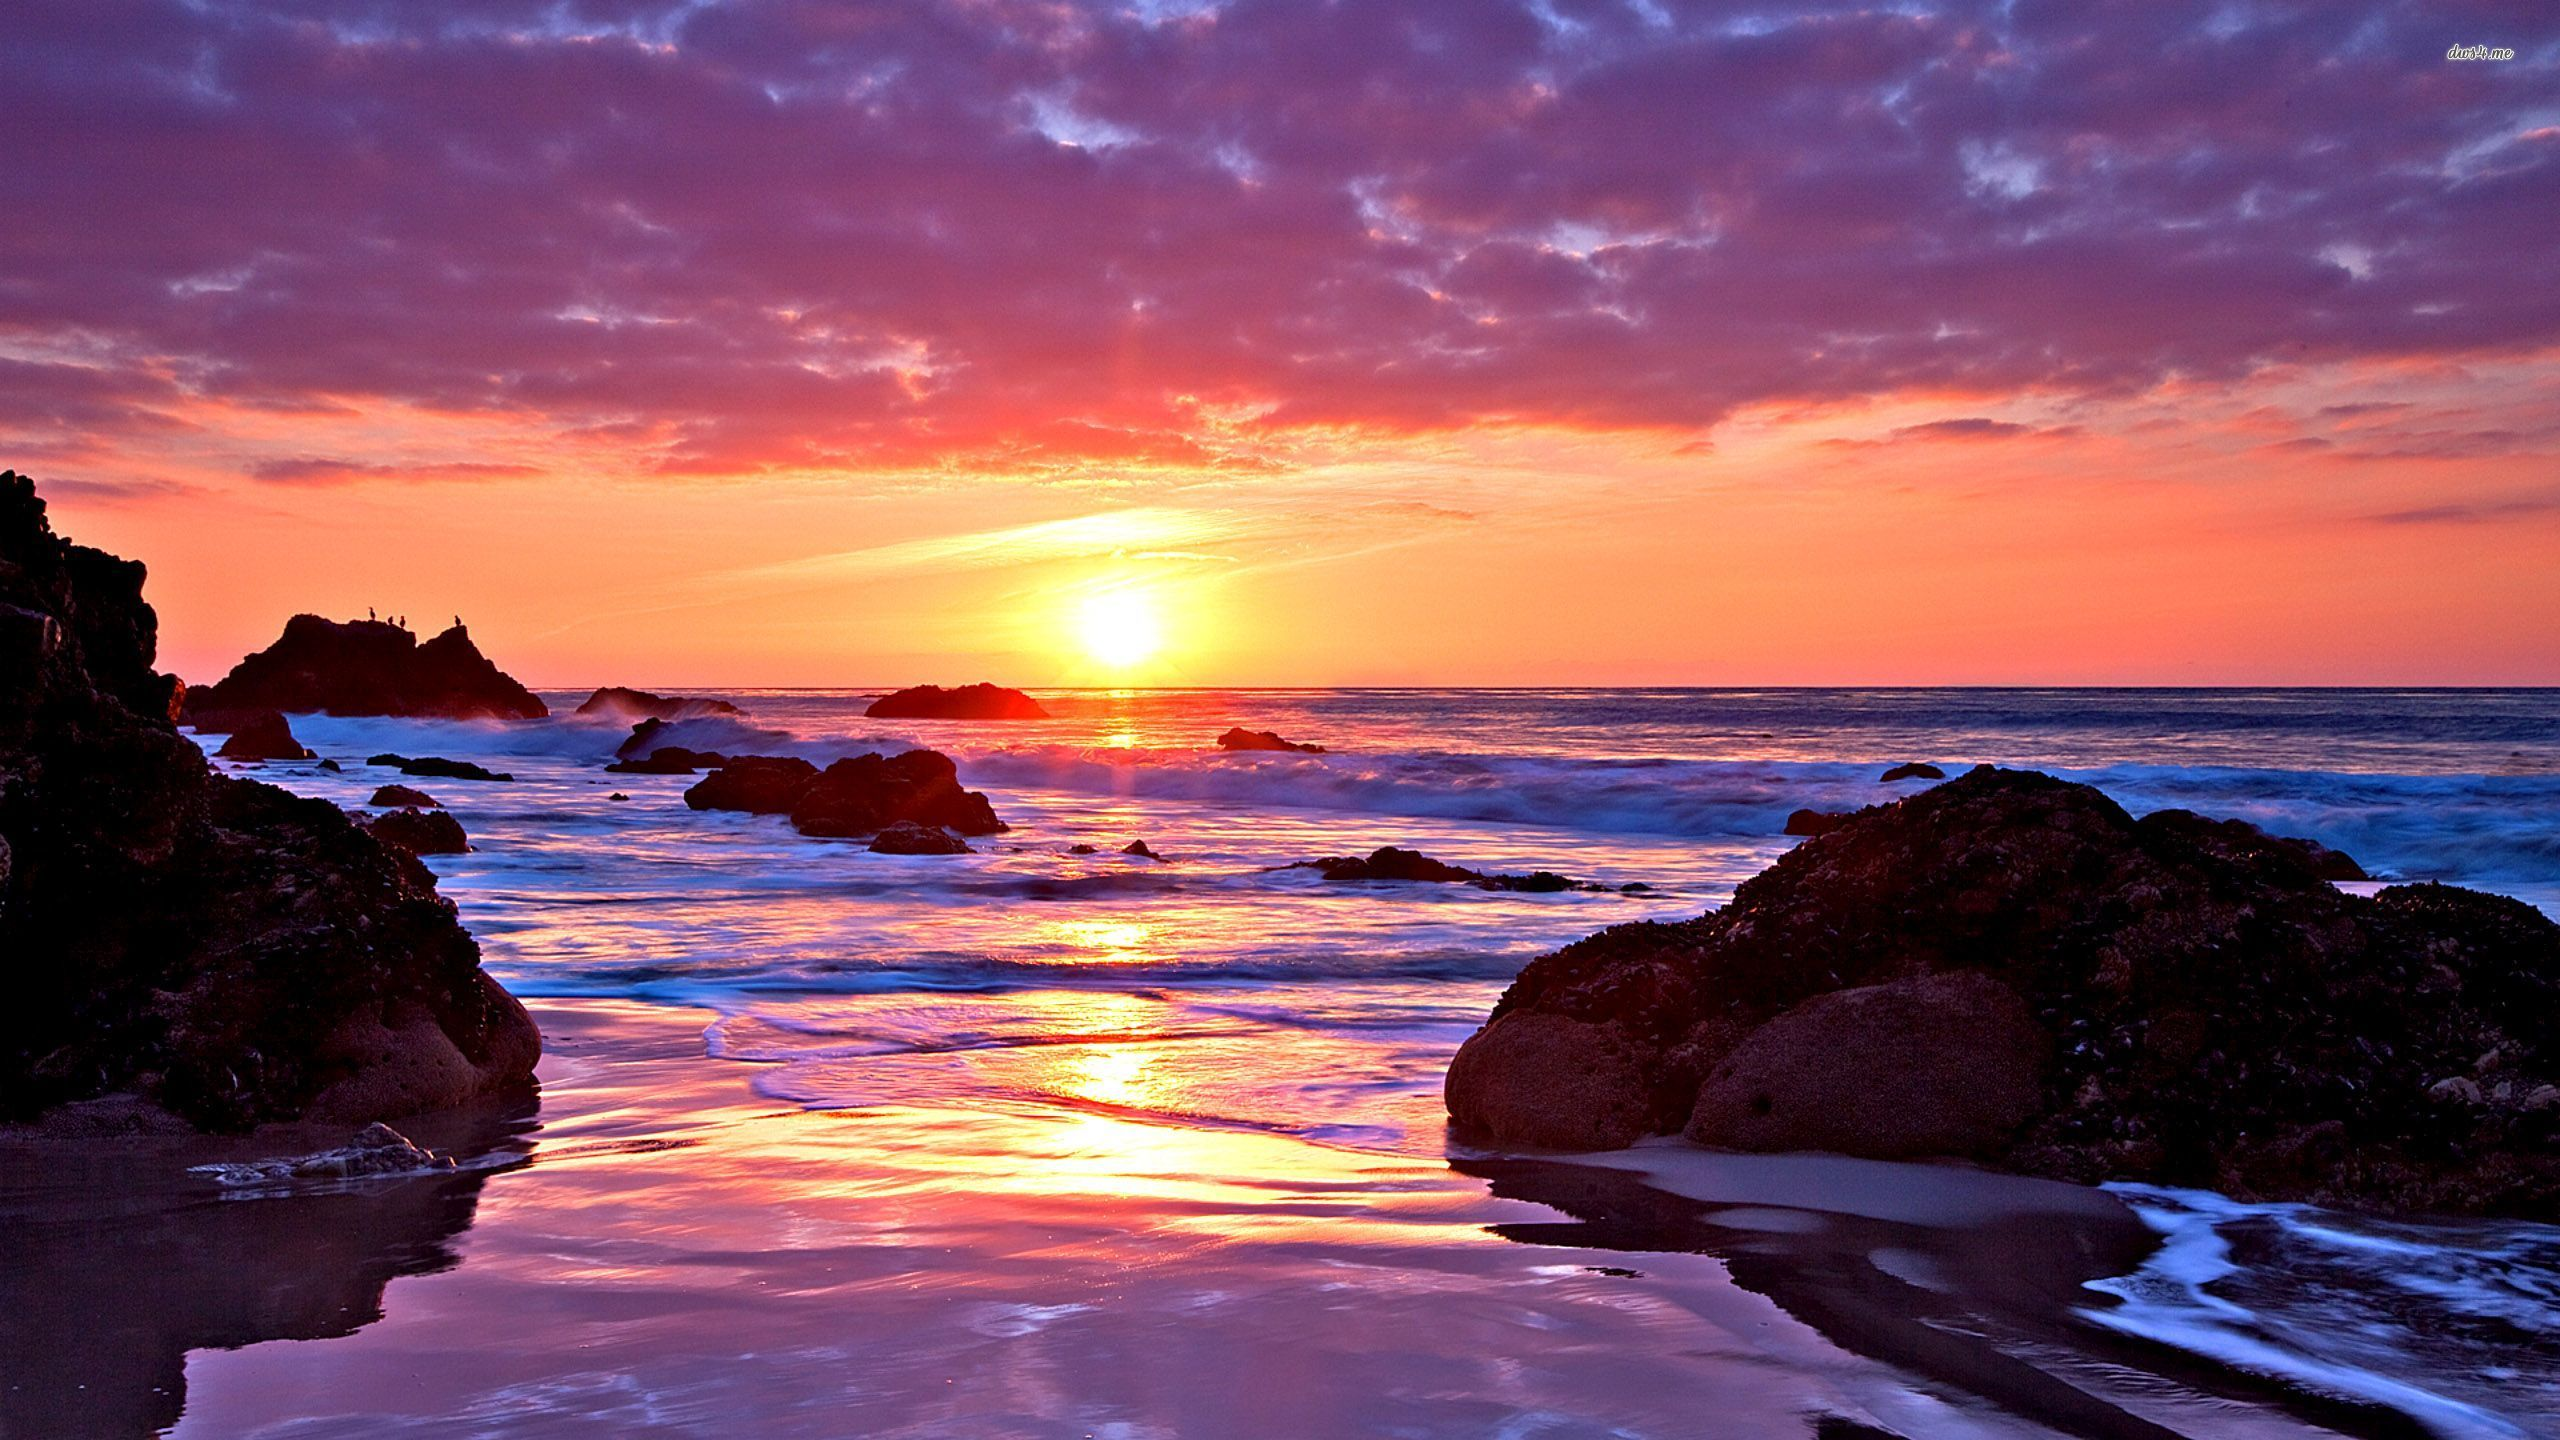 Ocean sunset wallpaper wallpapersafari - Ocean pictures for desktop background ...